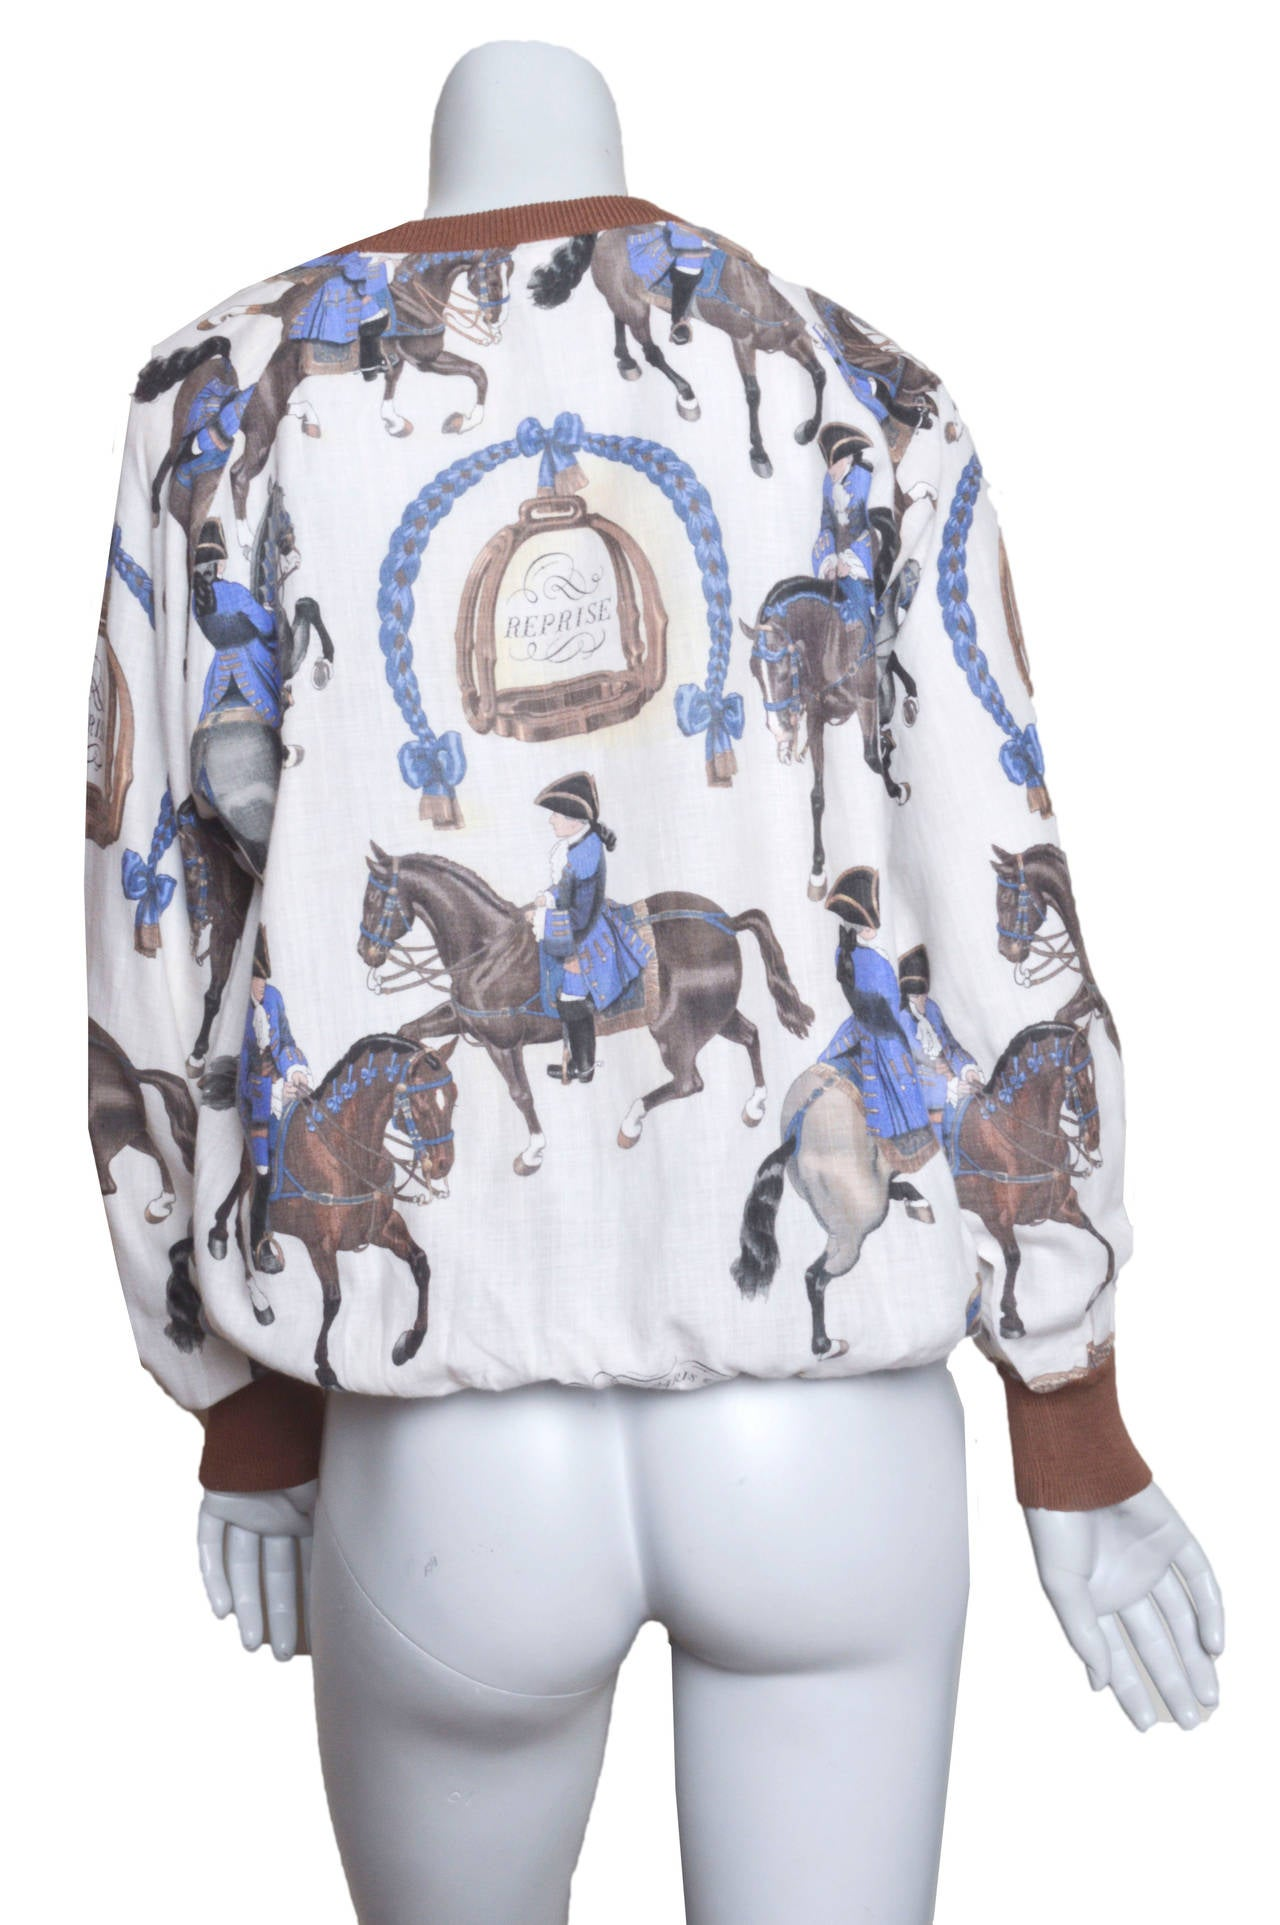 Hermes Equestrian Scarf Print Blouse 4